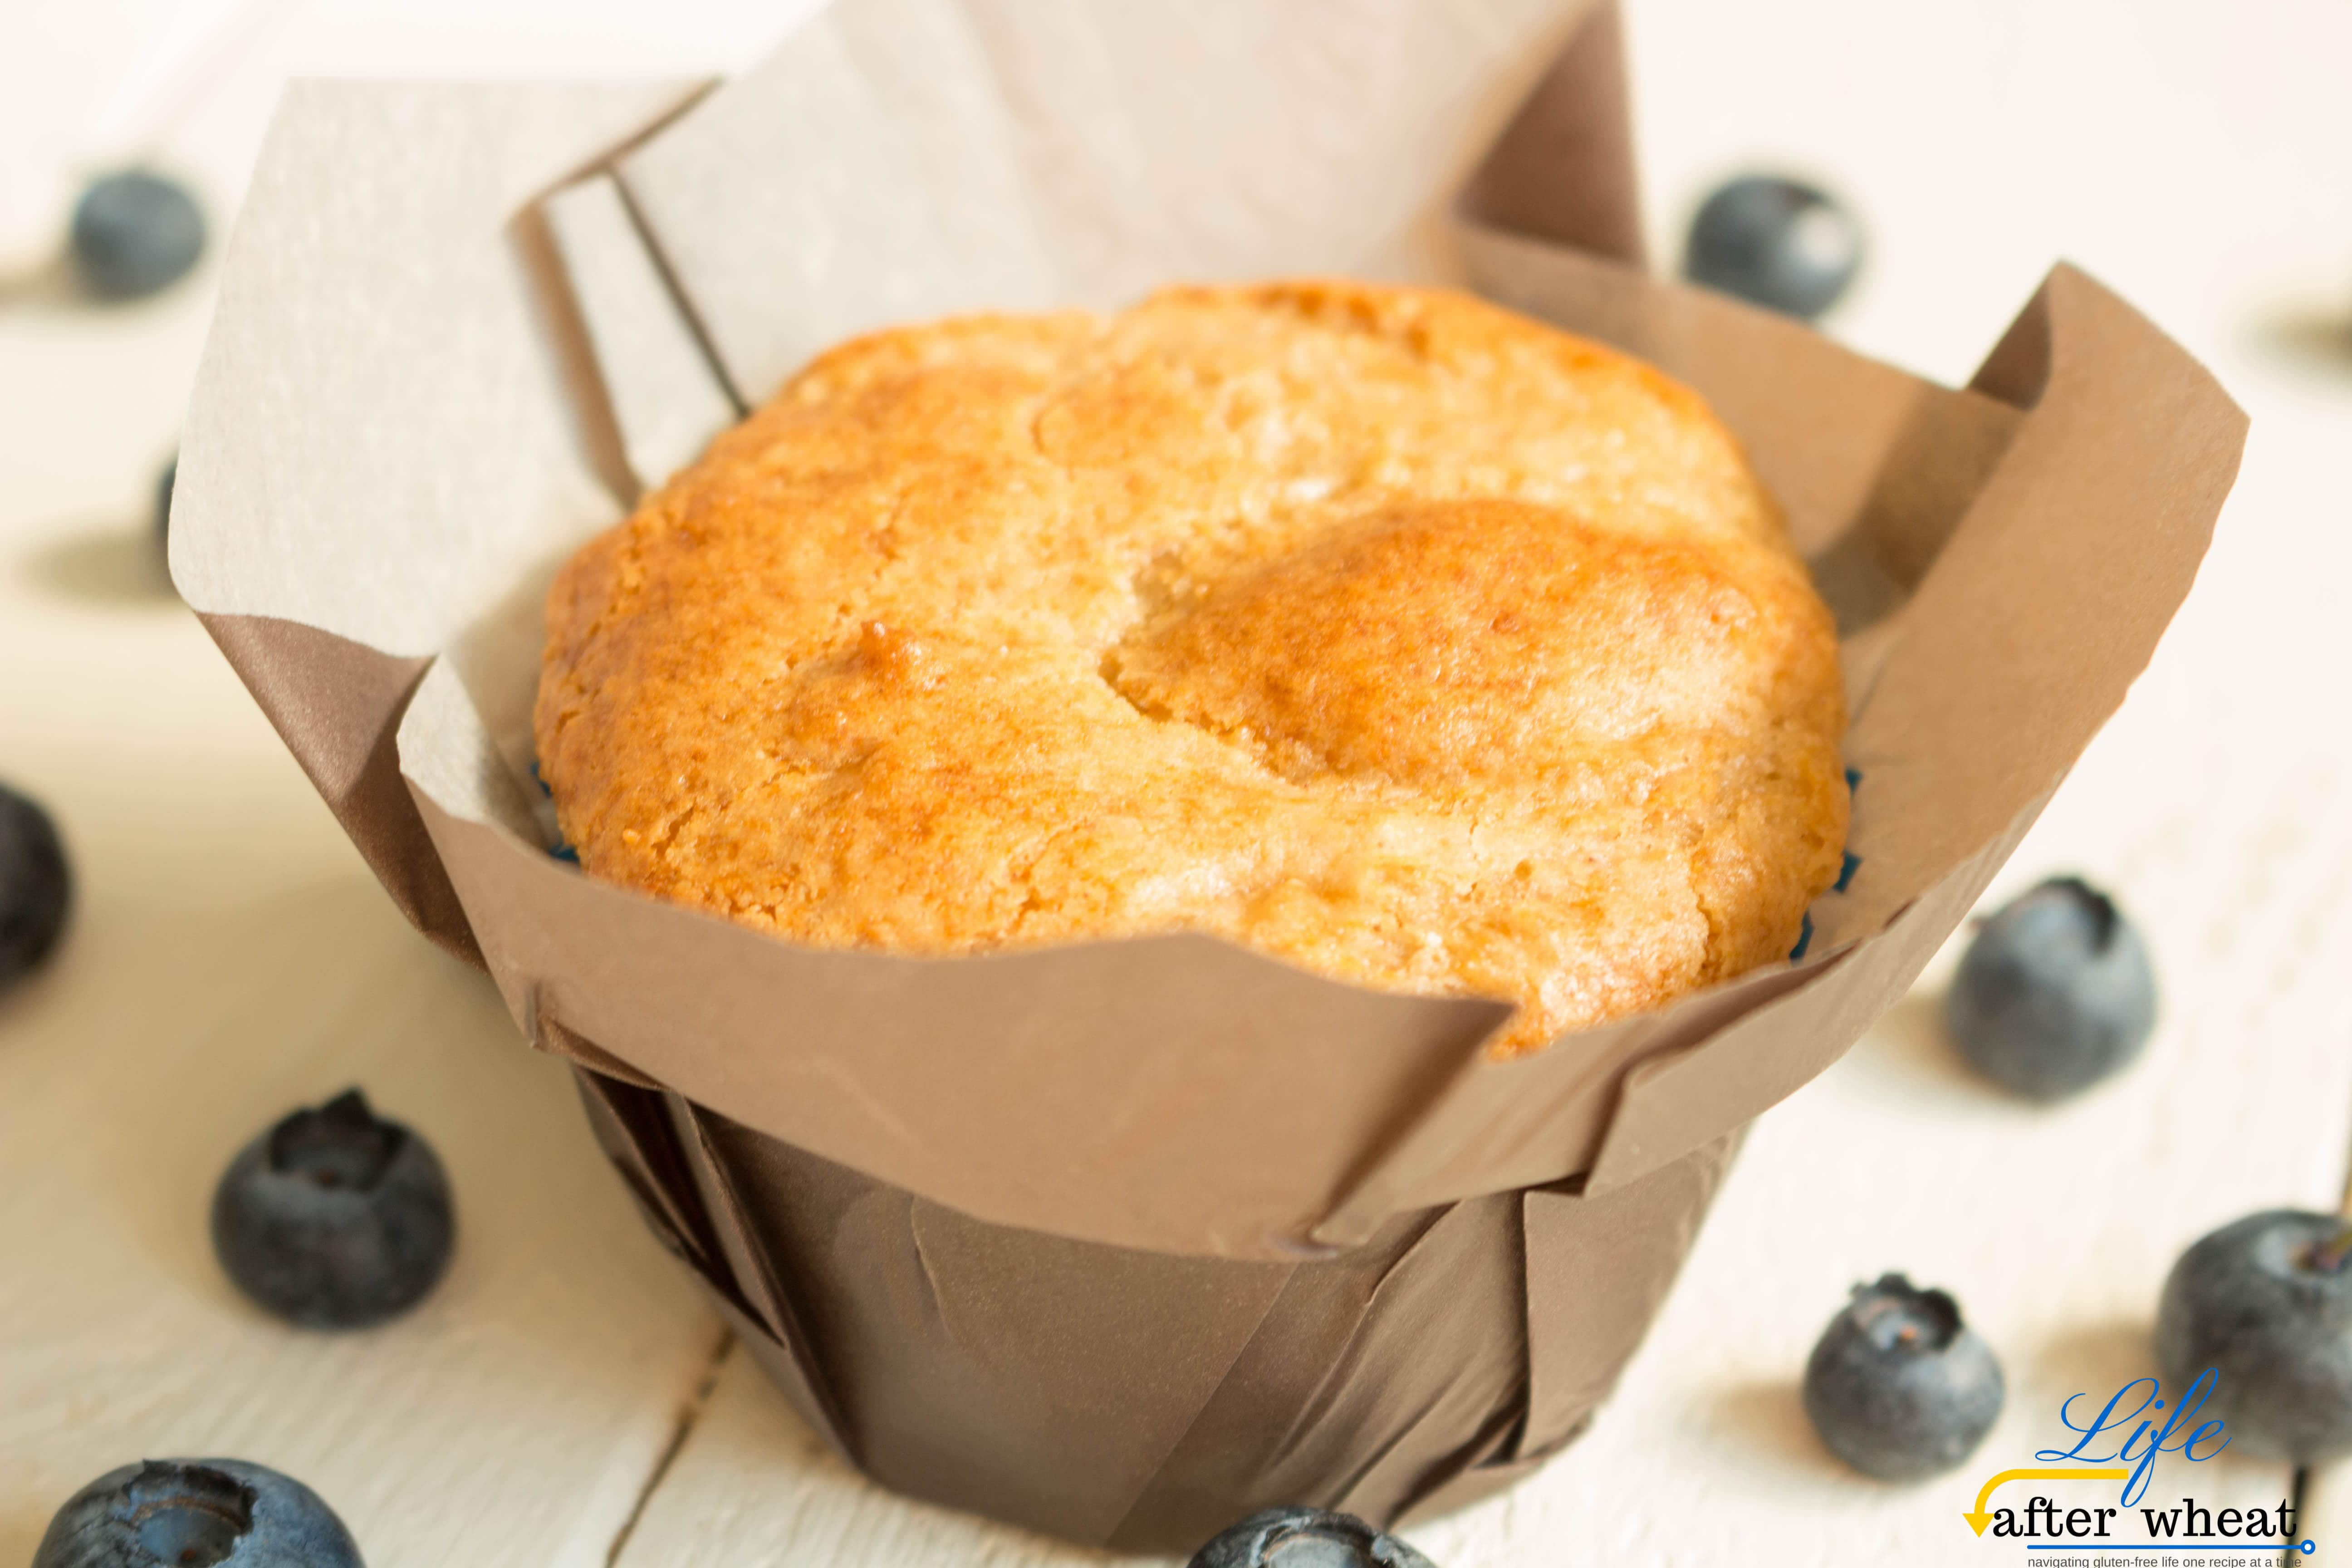 Mix and match this basic gluten free muffin batter to make what your family will love! Recipe includes 5 variations, or use your own add-ins! We've been making this recipe for years and it turns out perfect every time.